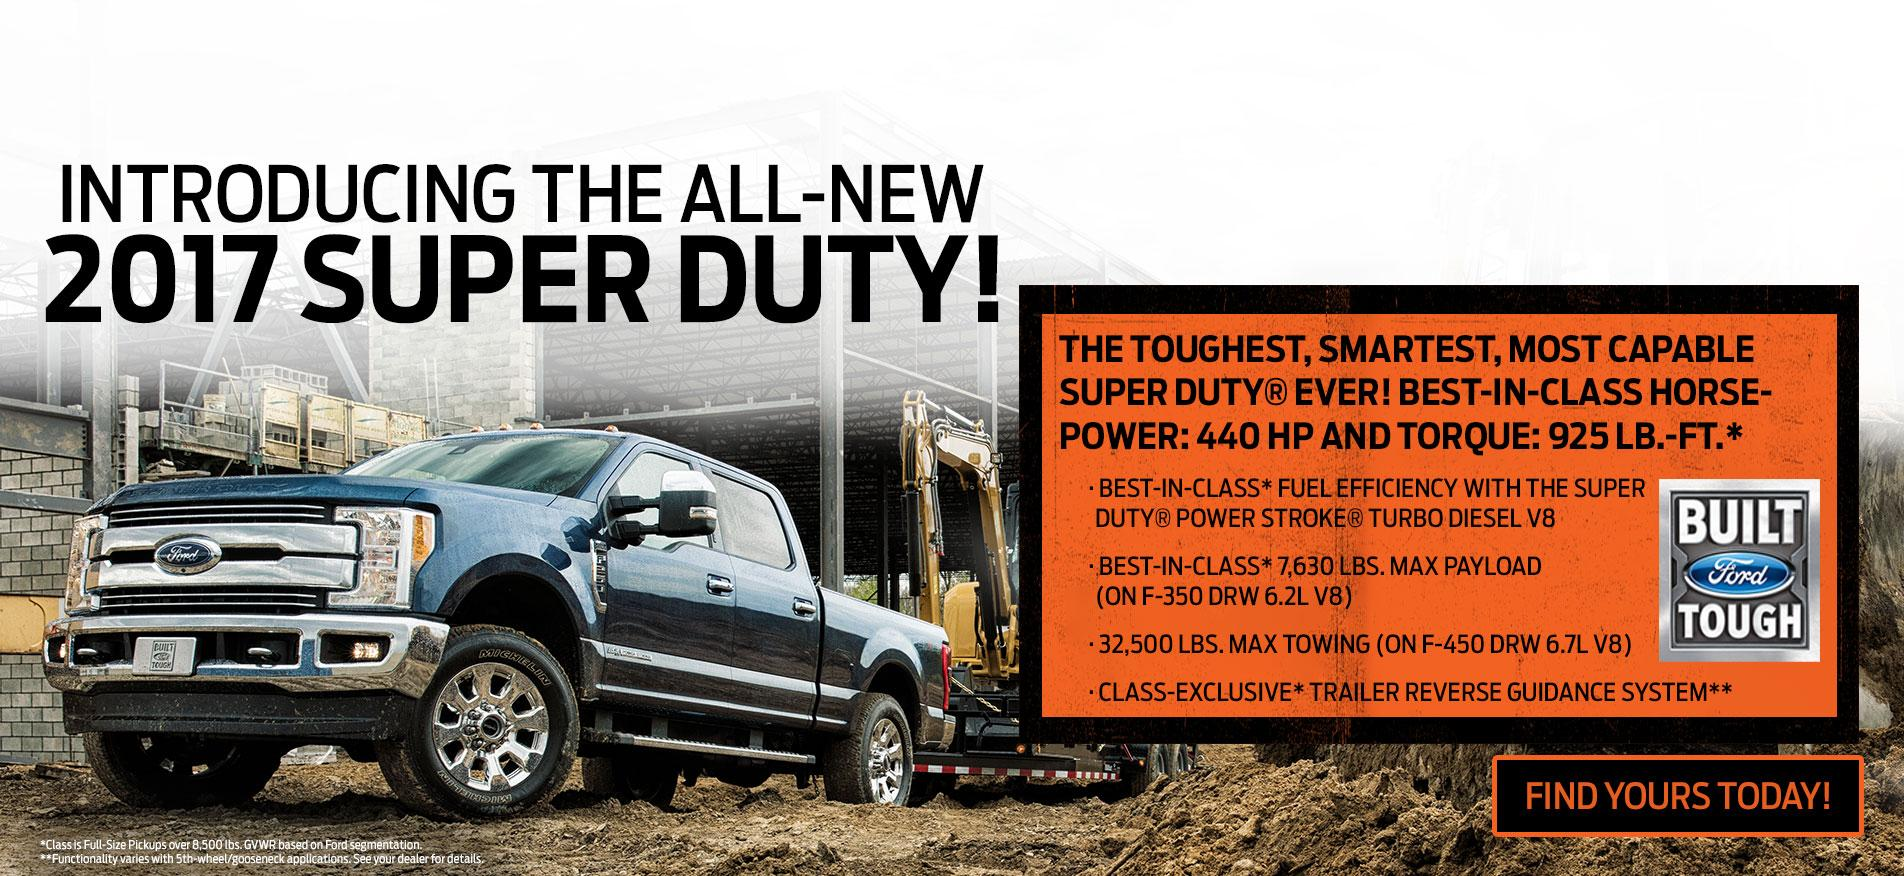 All new Super Duty at Glenoak Ford